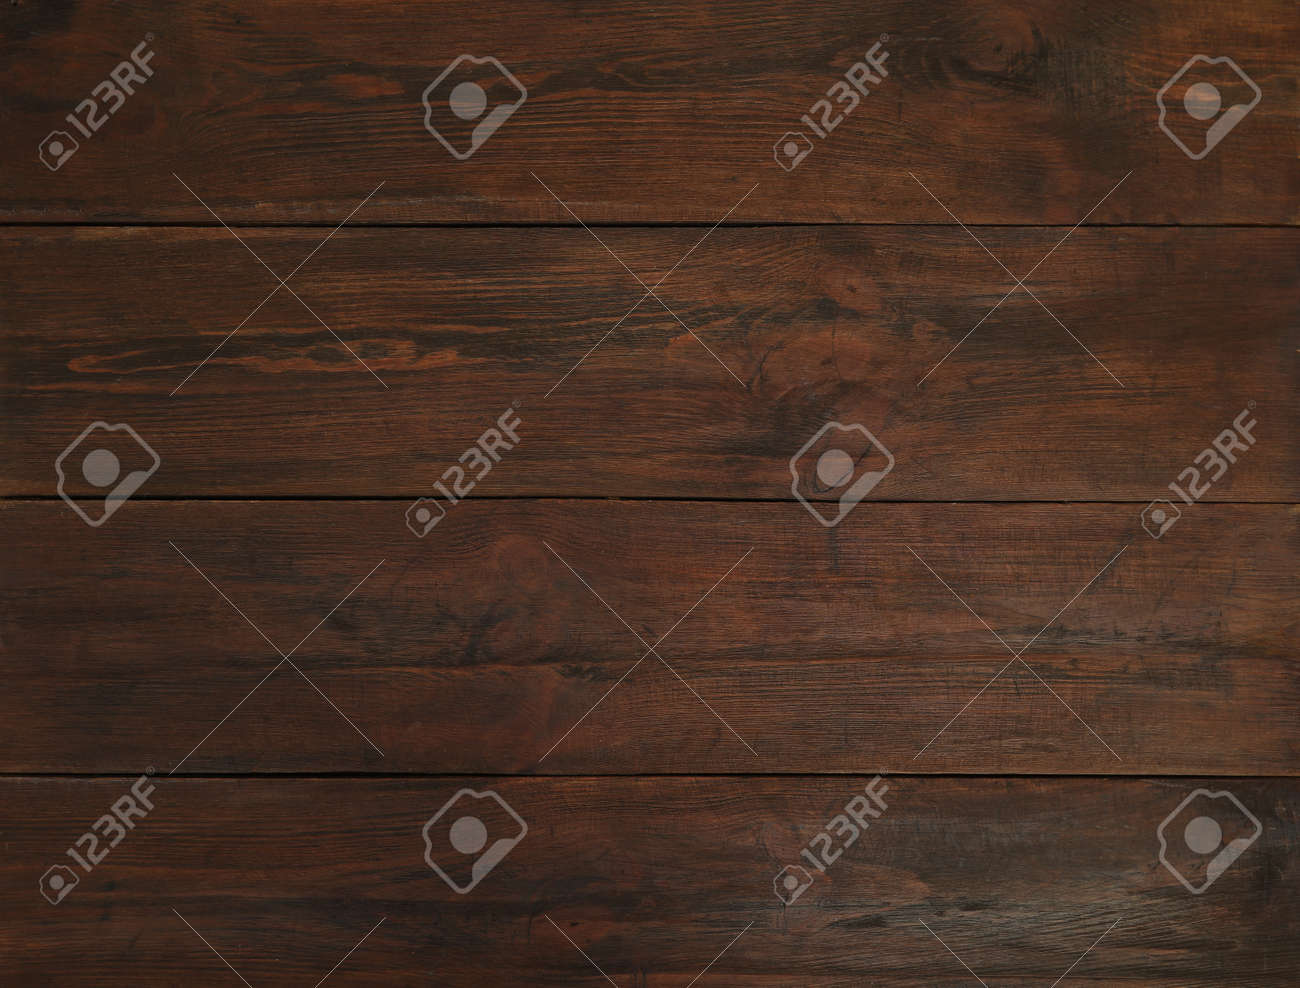 Texture of wooden surface as background, top view - 169082323